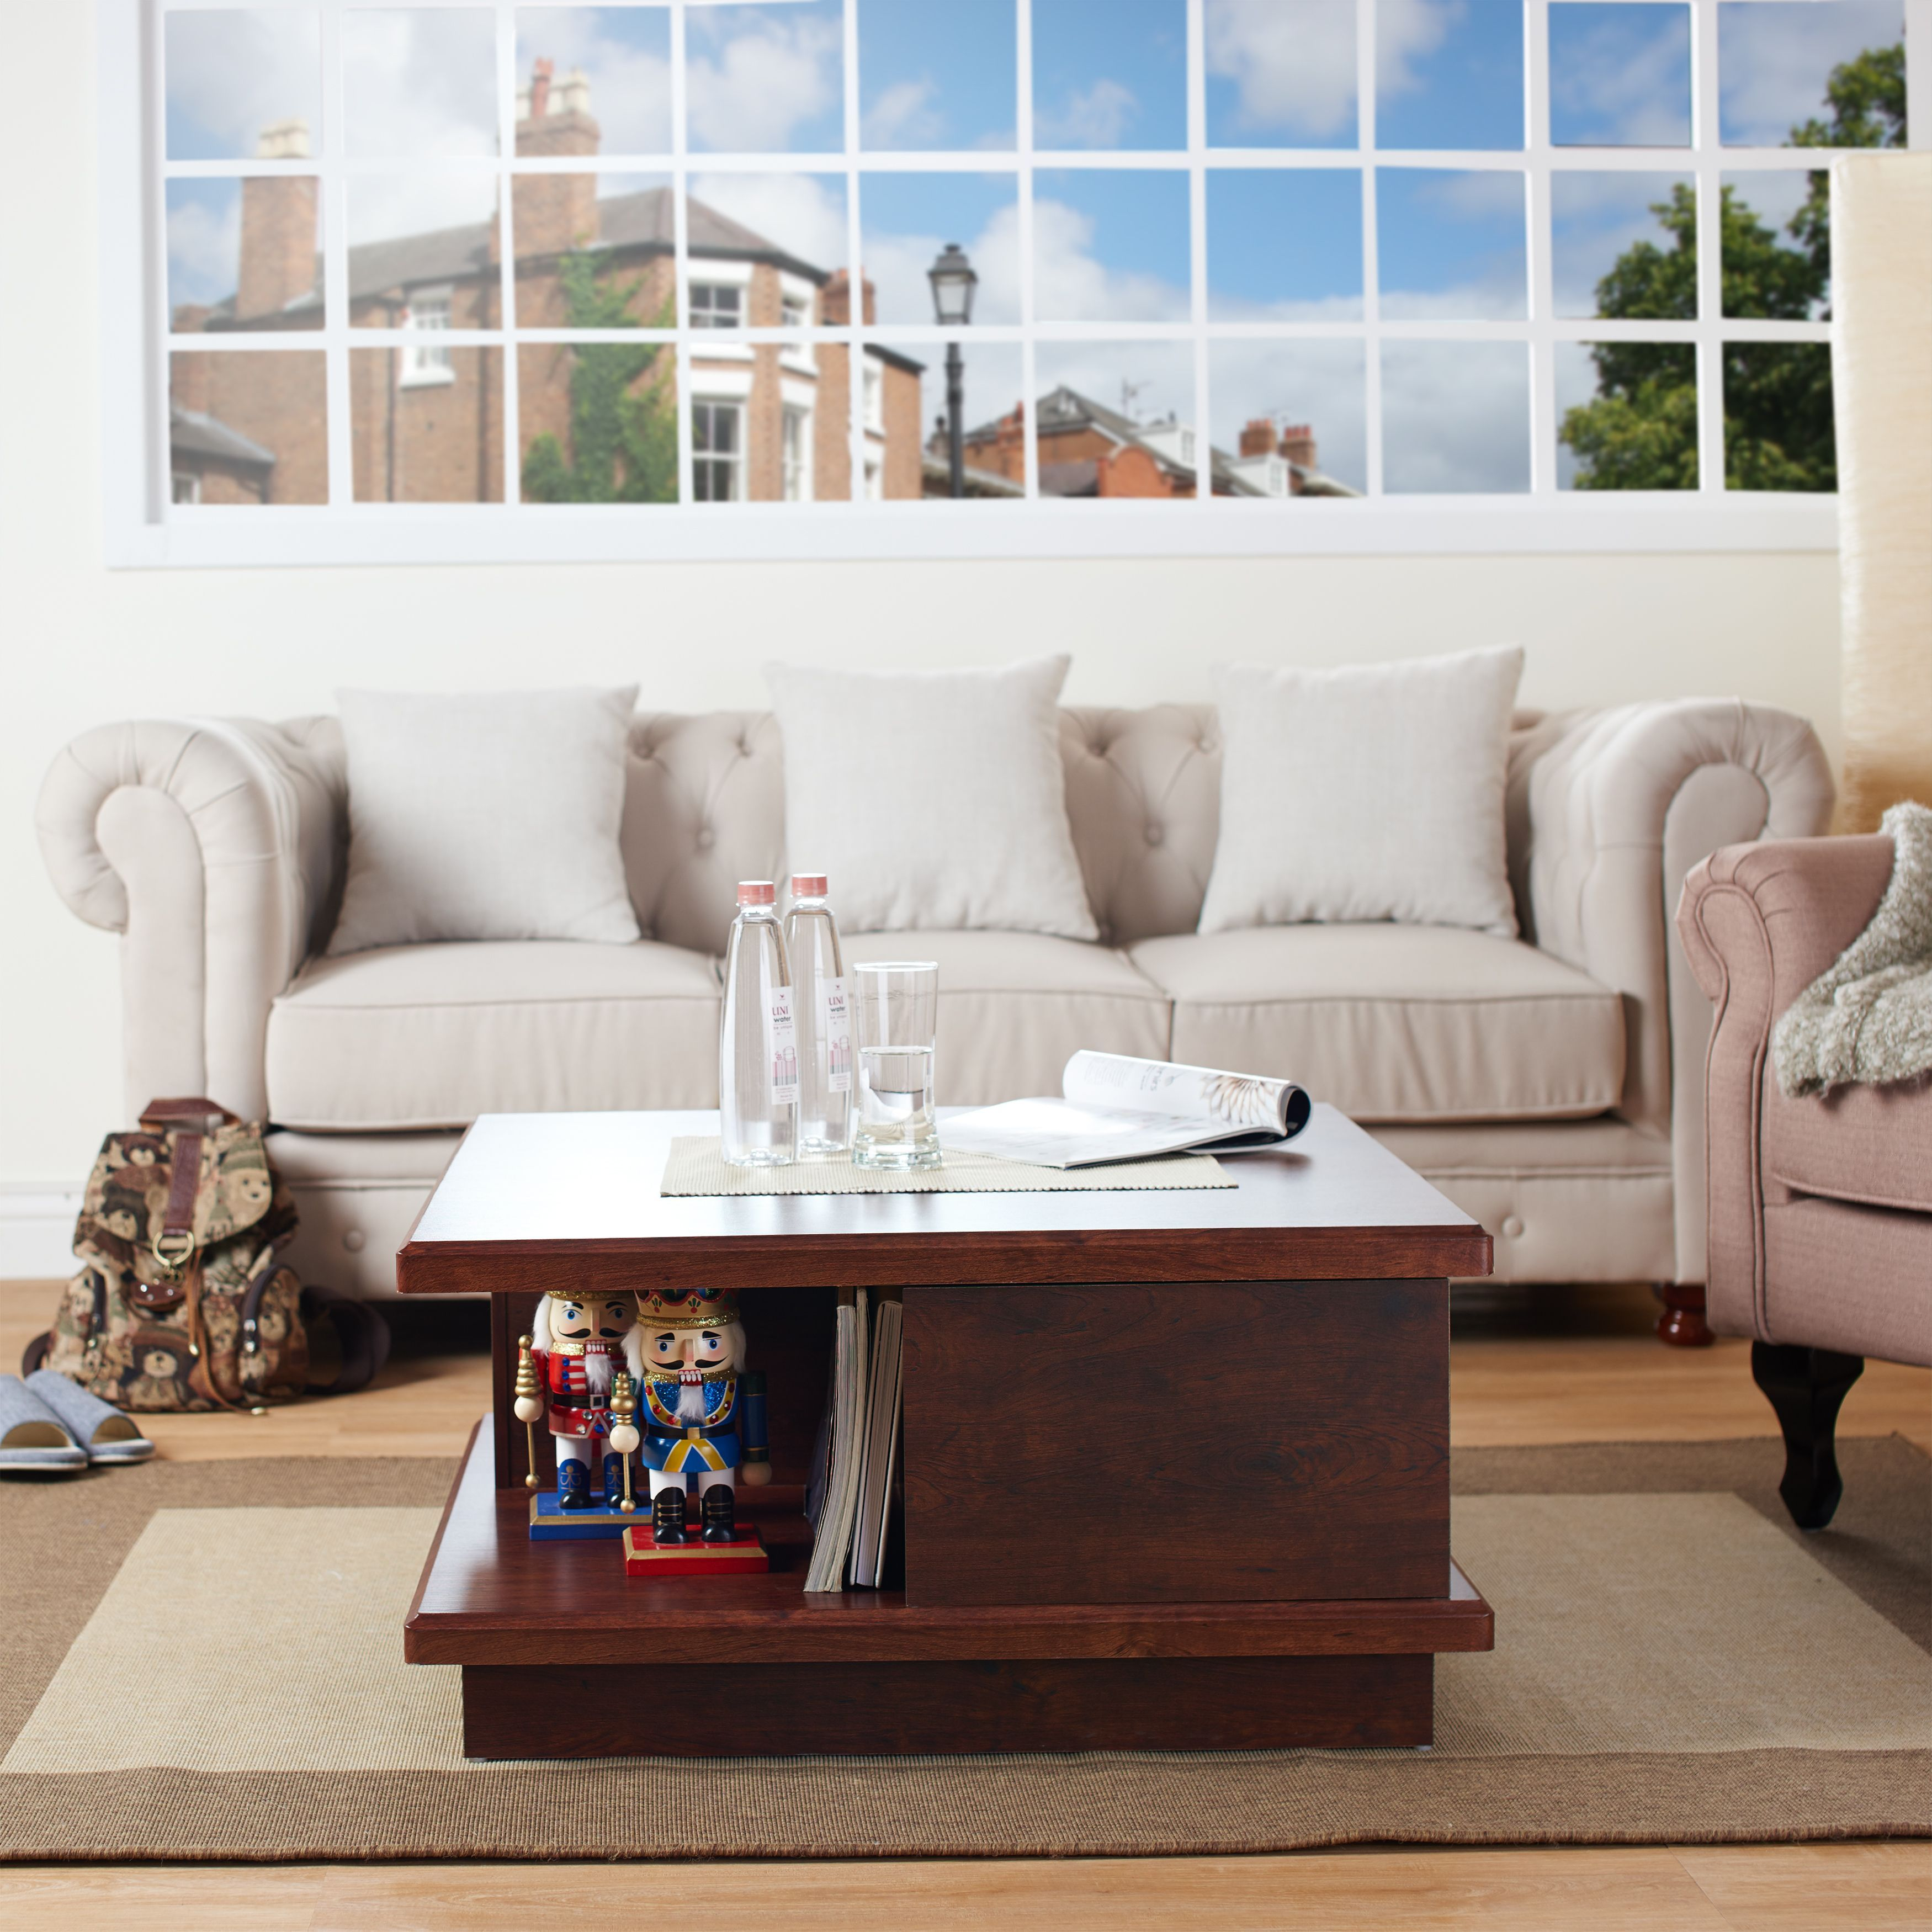 Liven up your decor options with this open and spacious coffee table ...